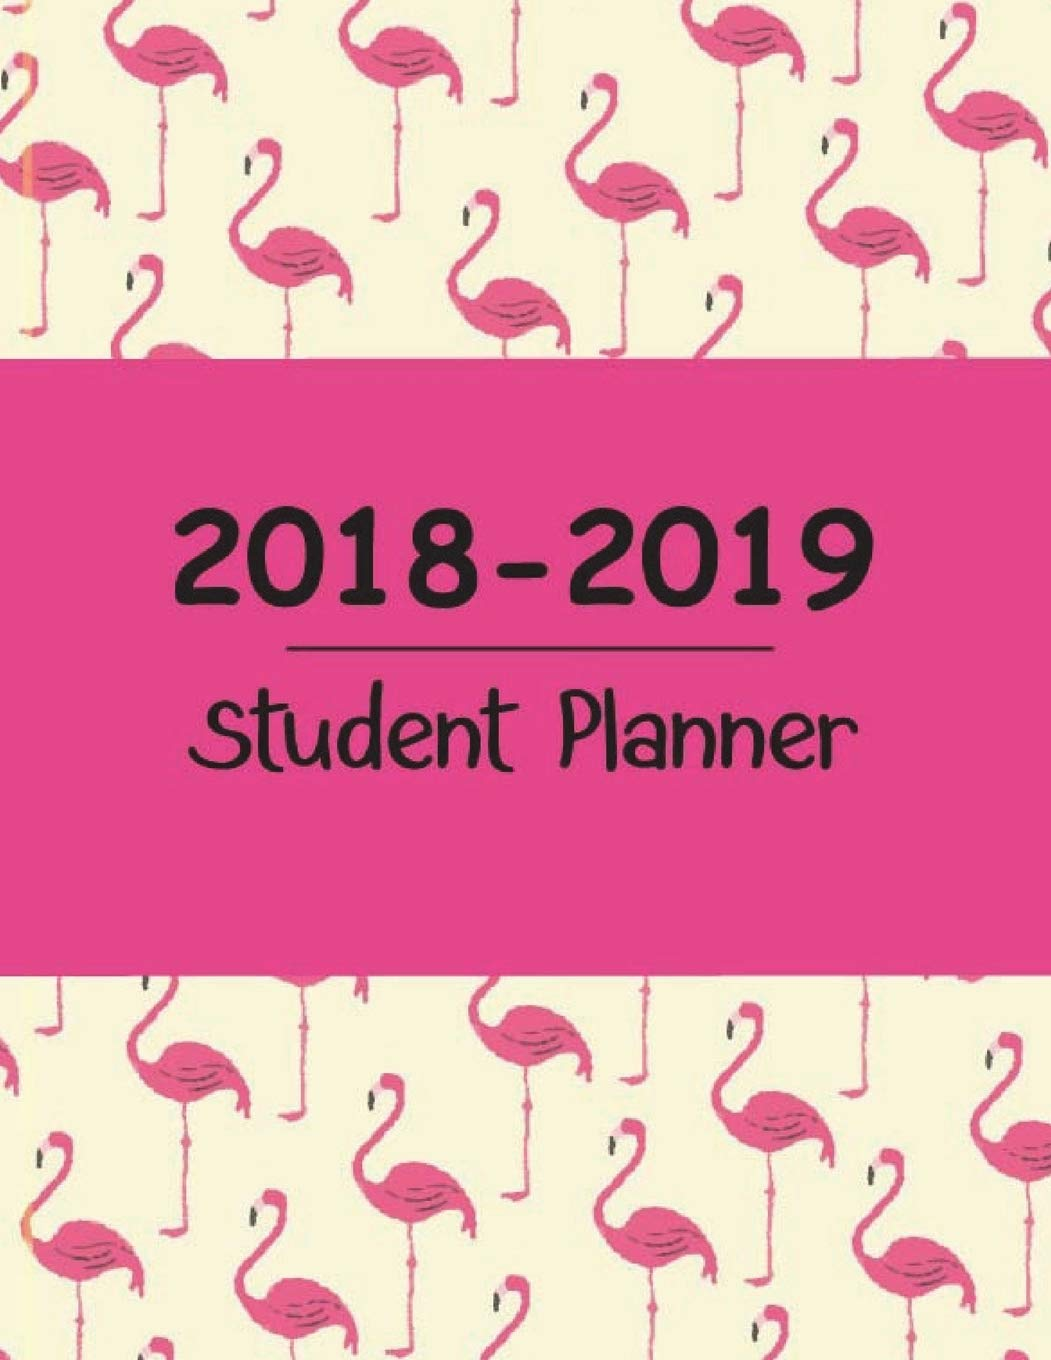 Download 2018-2019 Student Planner: School Journal, Weekly Planners, School Project Planner, Checklist, Daily Activities, Monthly Calendar, Course Information, Course Assignments ebook